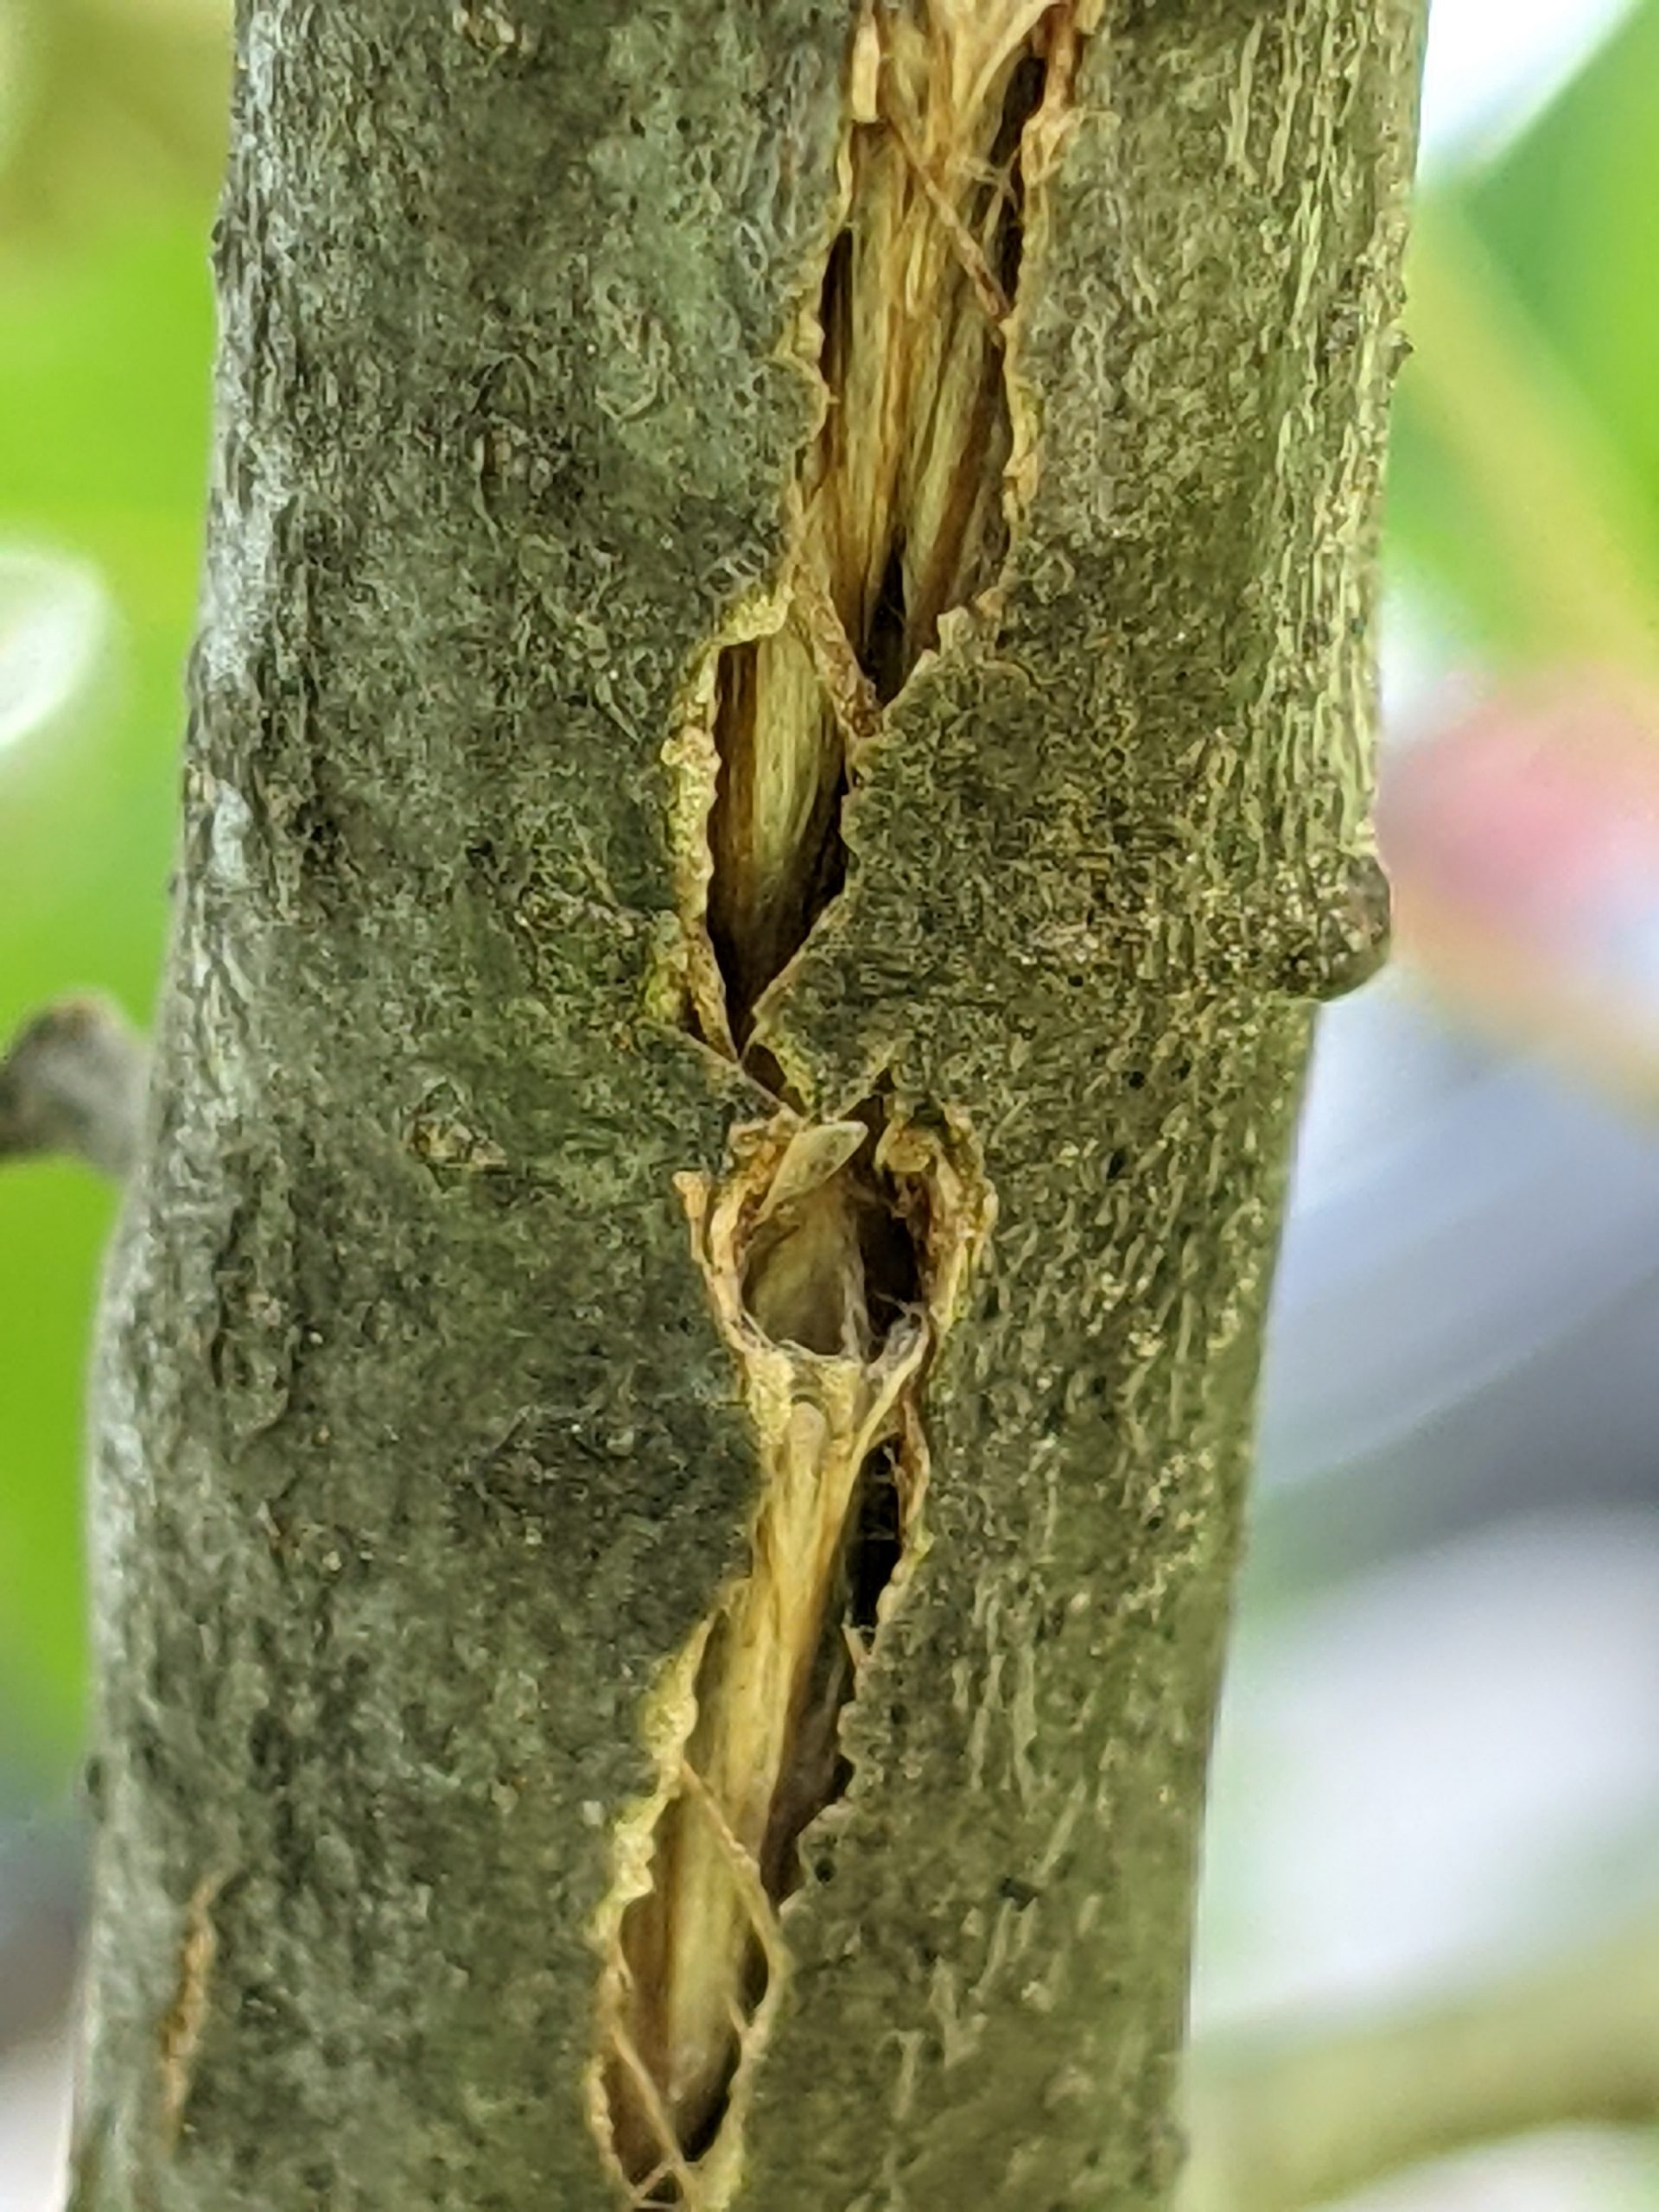 Oviposition scars in a tree trunk, made by a cicada.